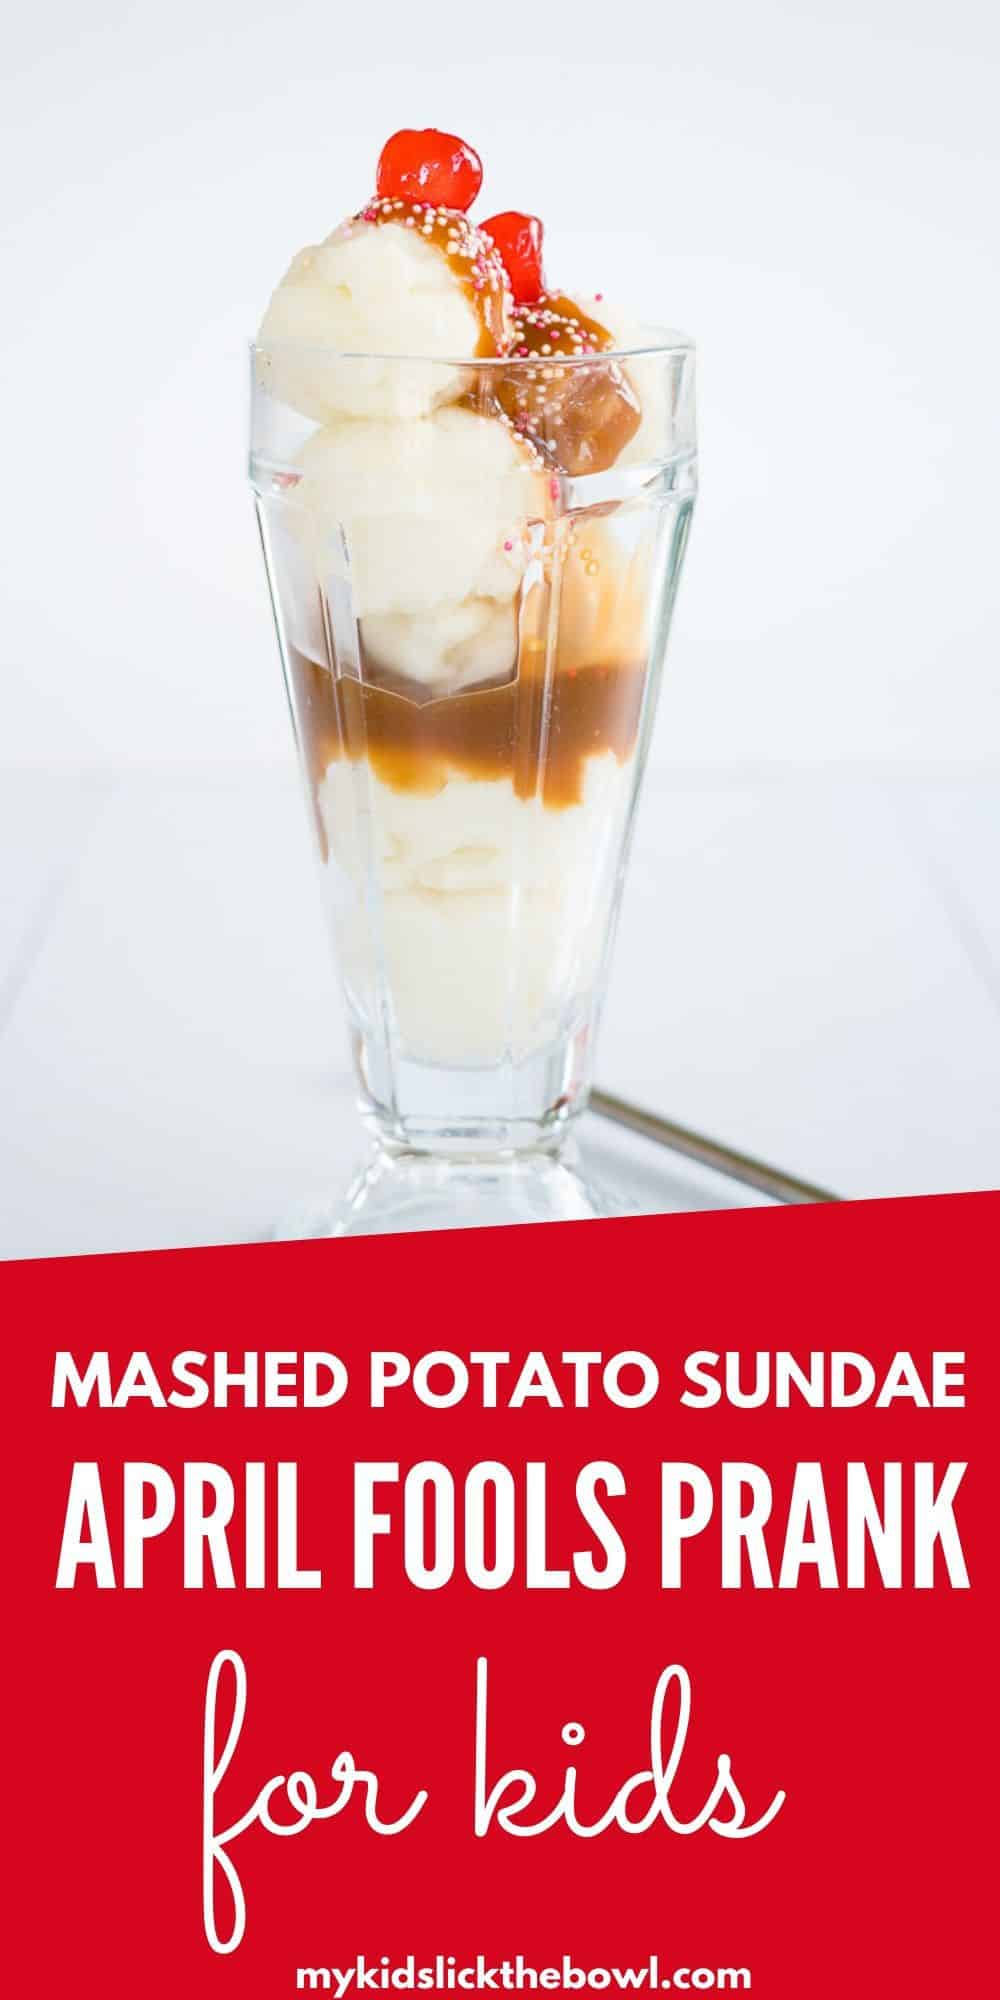 and ice cream sundae in a tall glass, made from scoops of mashed potato and gravy